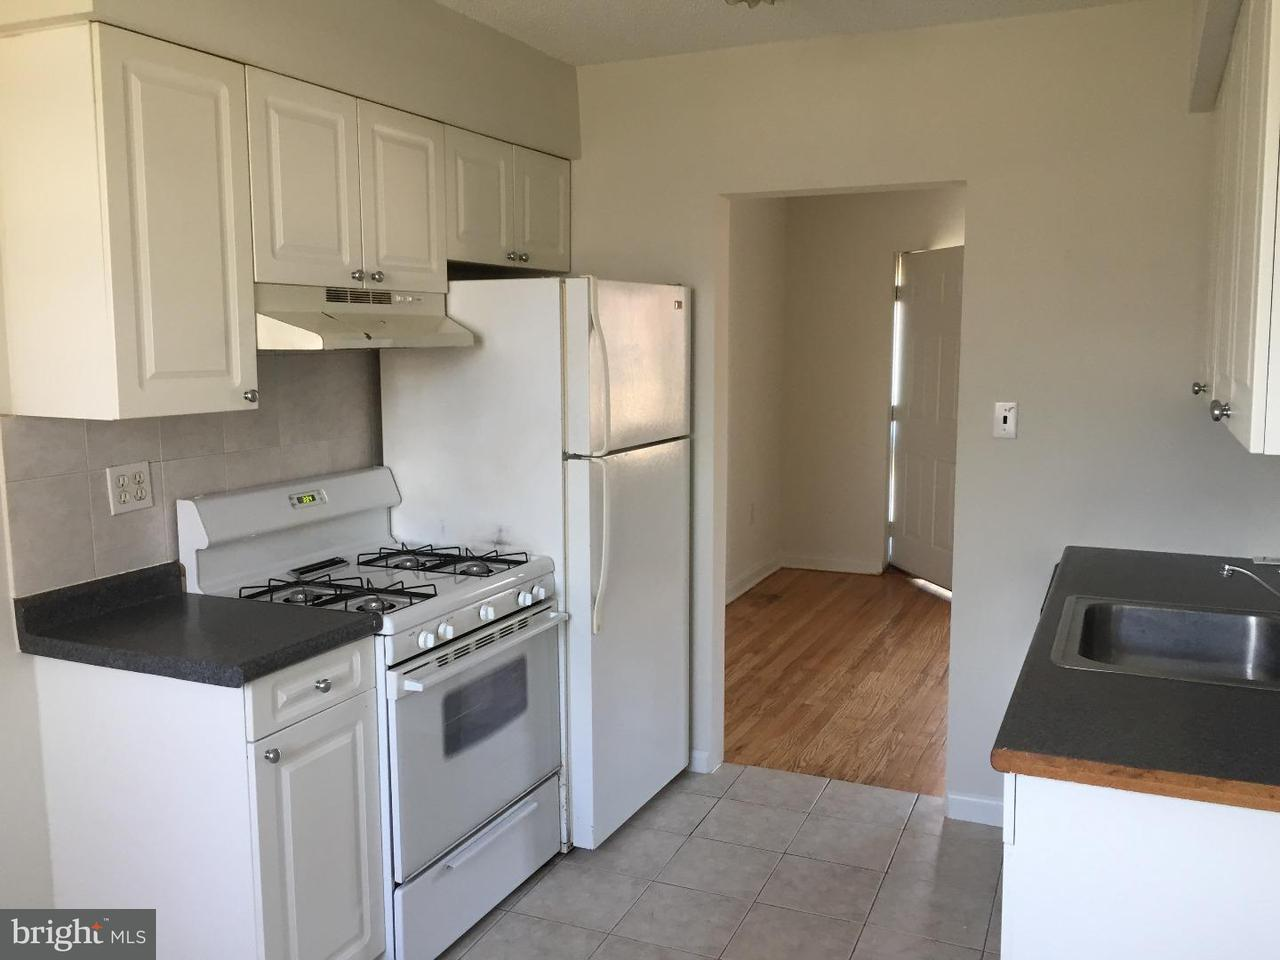 Single Family Home for Rent at 607 BROADWAY #1ST FL Westville, New Jersey 08093 United States